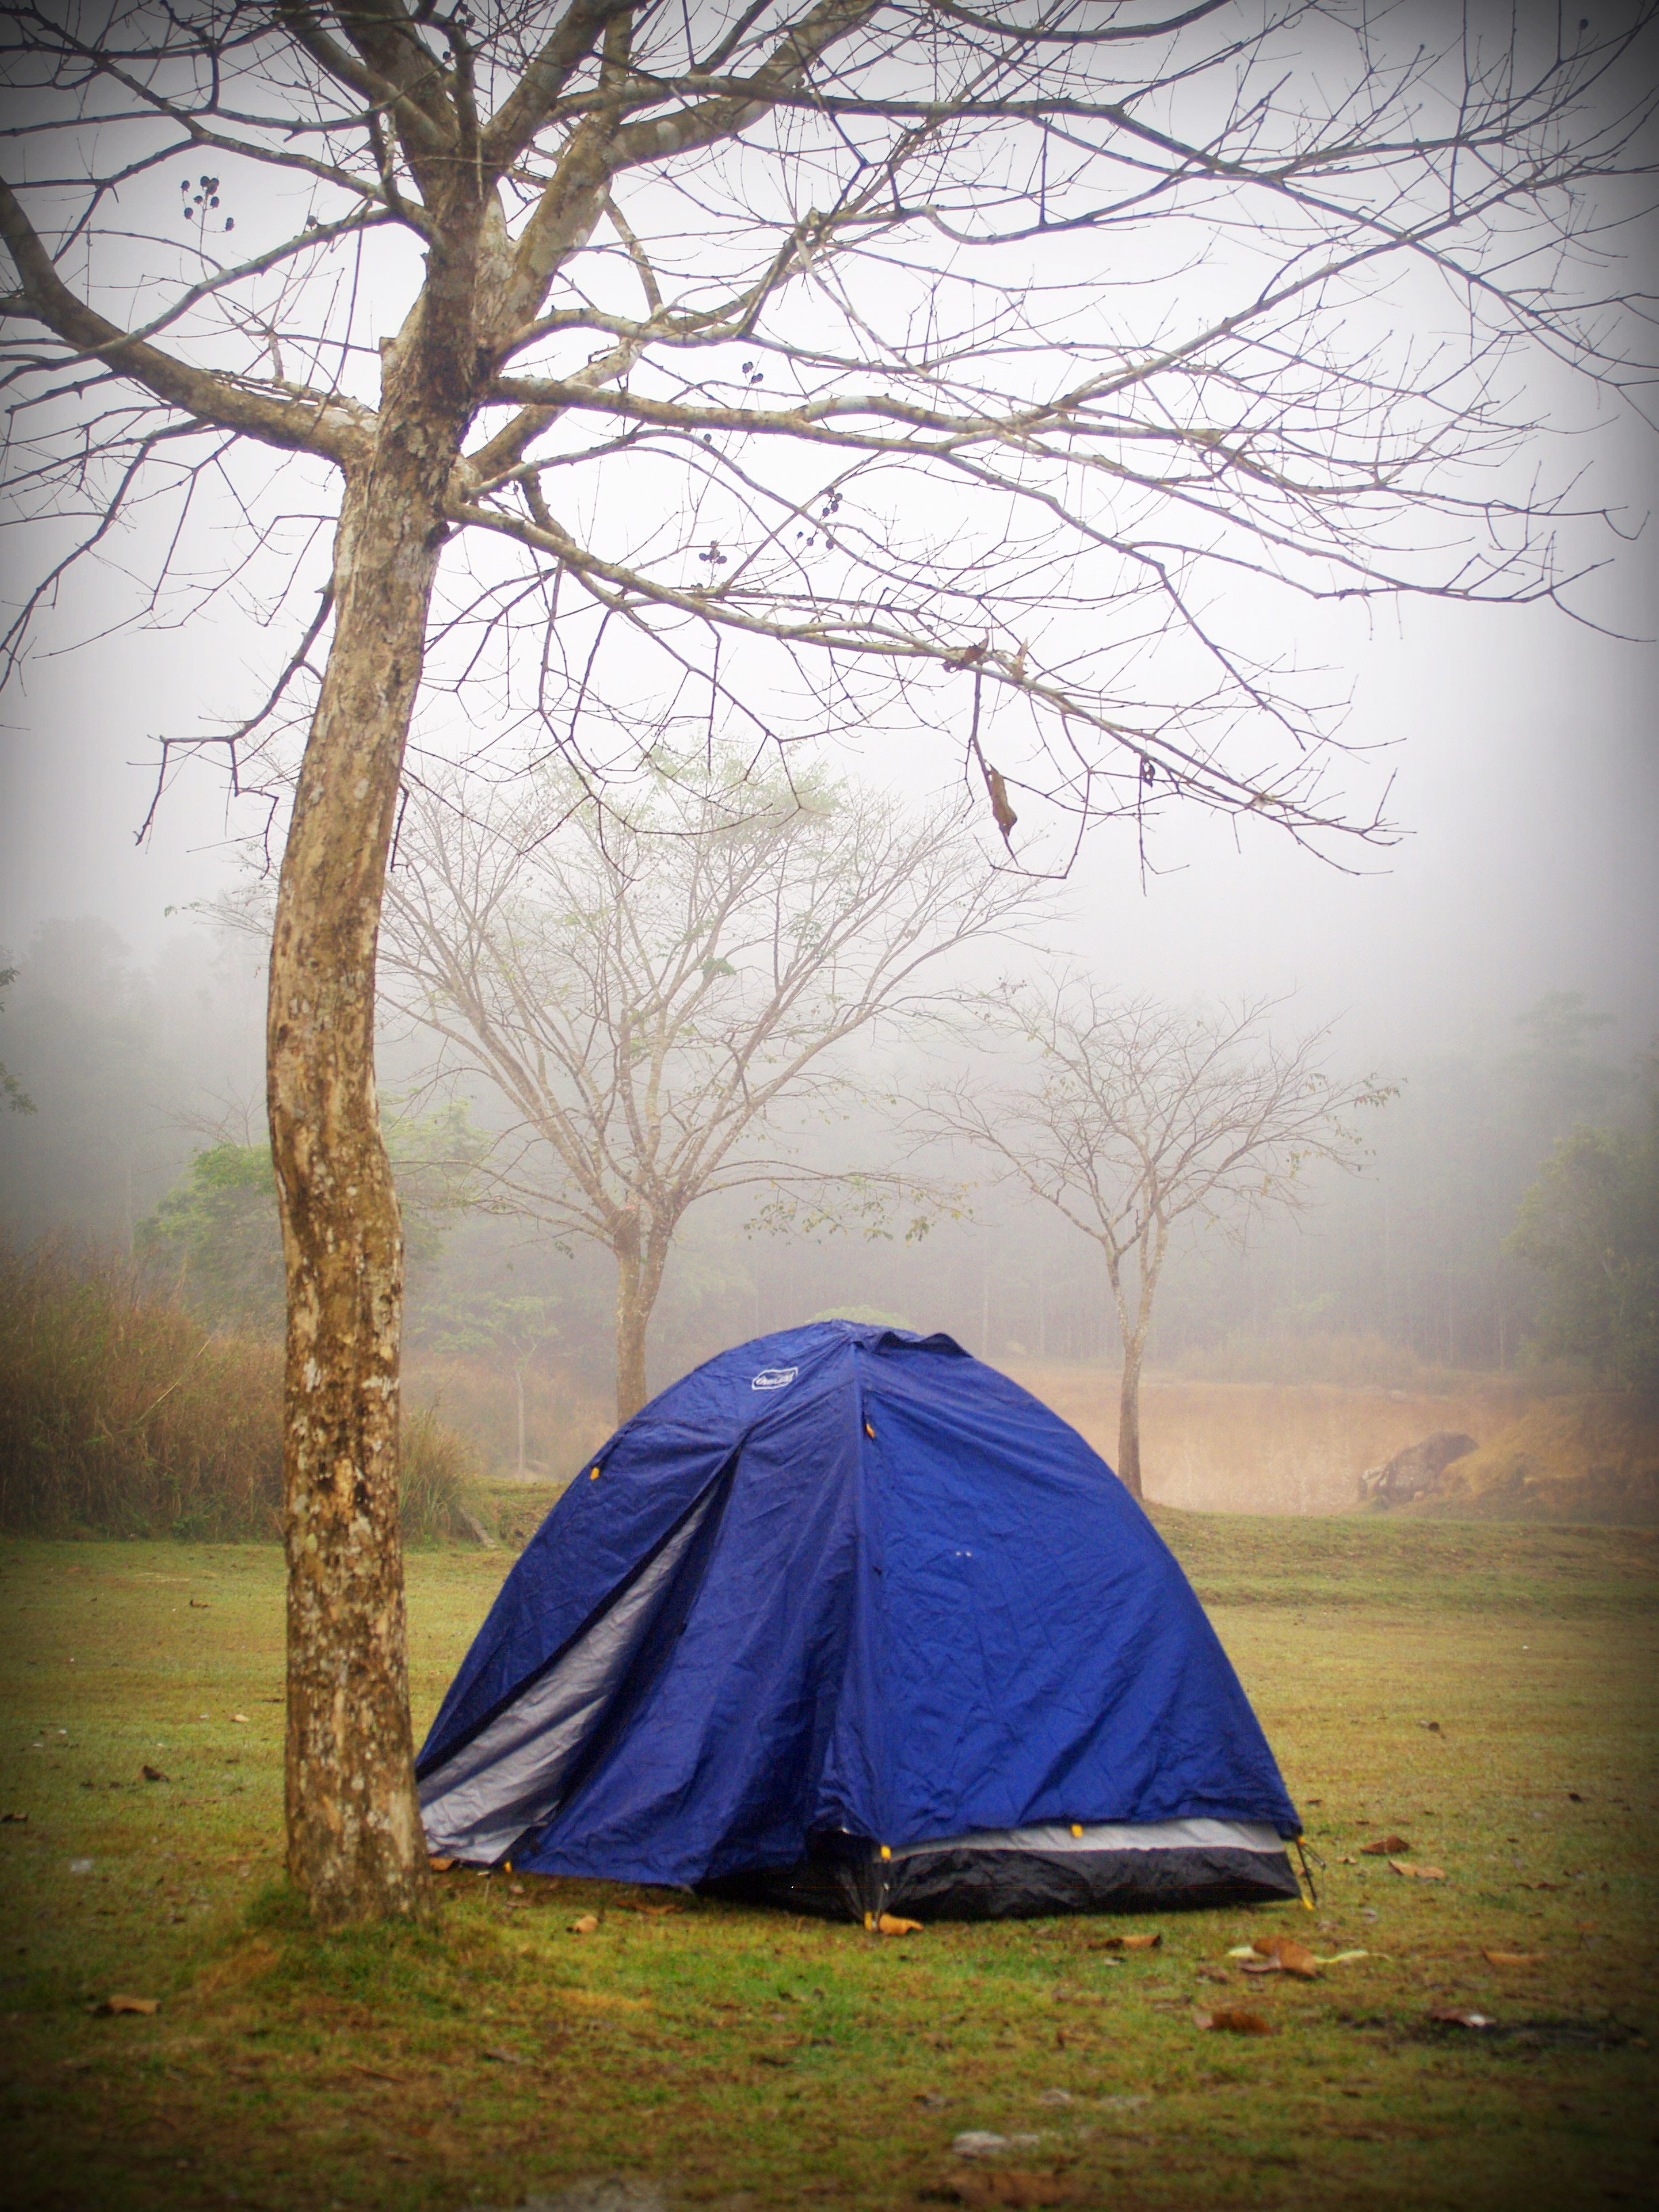 Best tent for Cloudy Weather